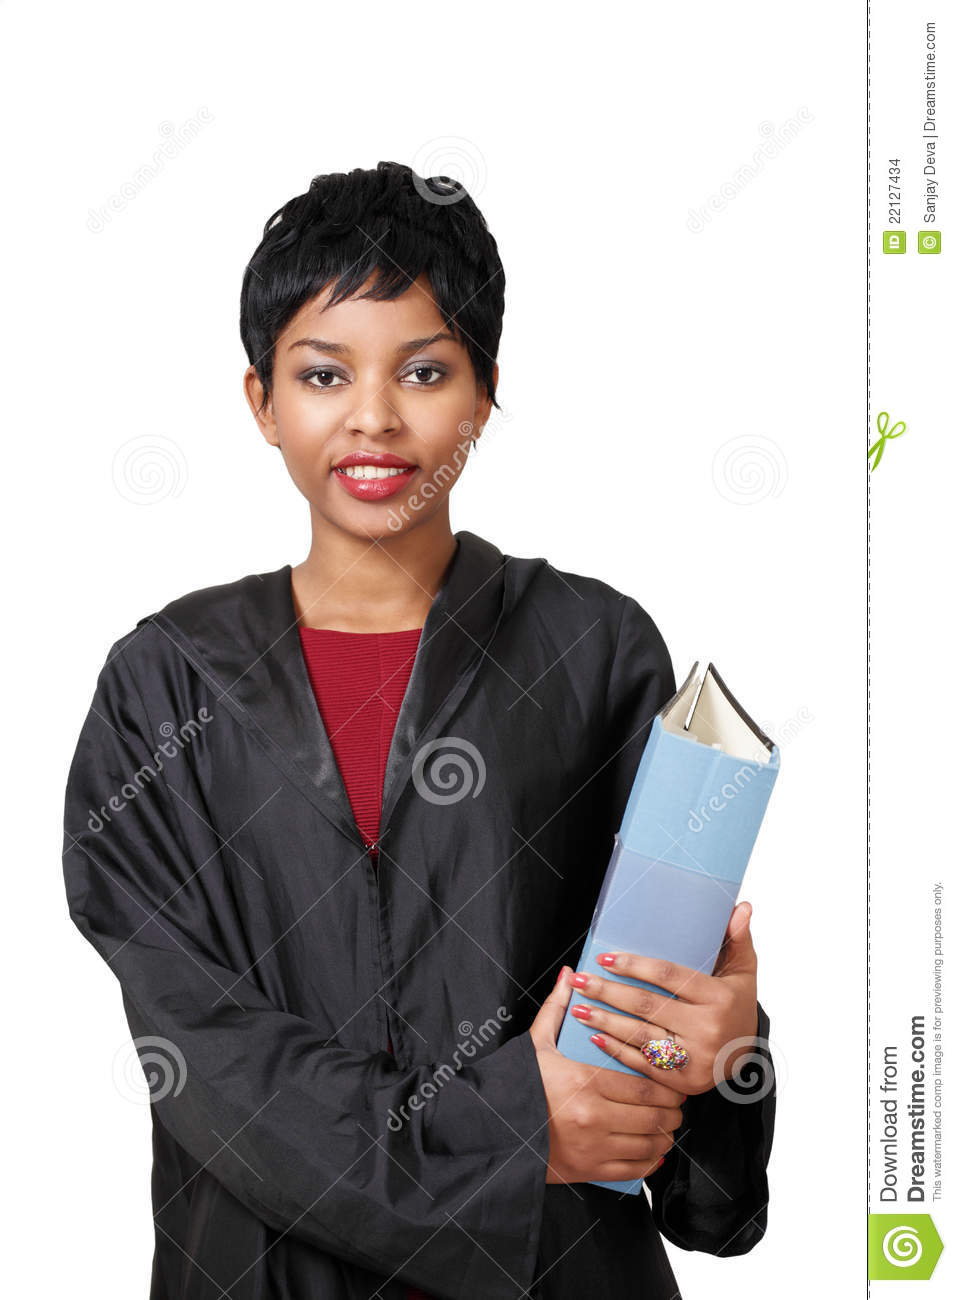 Cute Stock Photography: Cute Lawyer Girl Stock Images